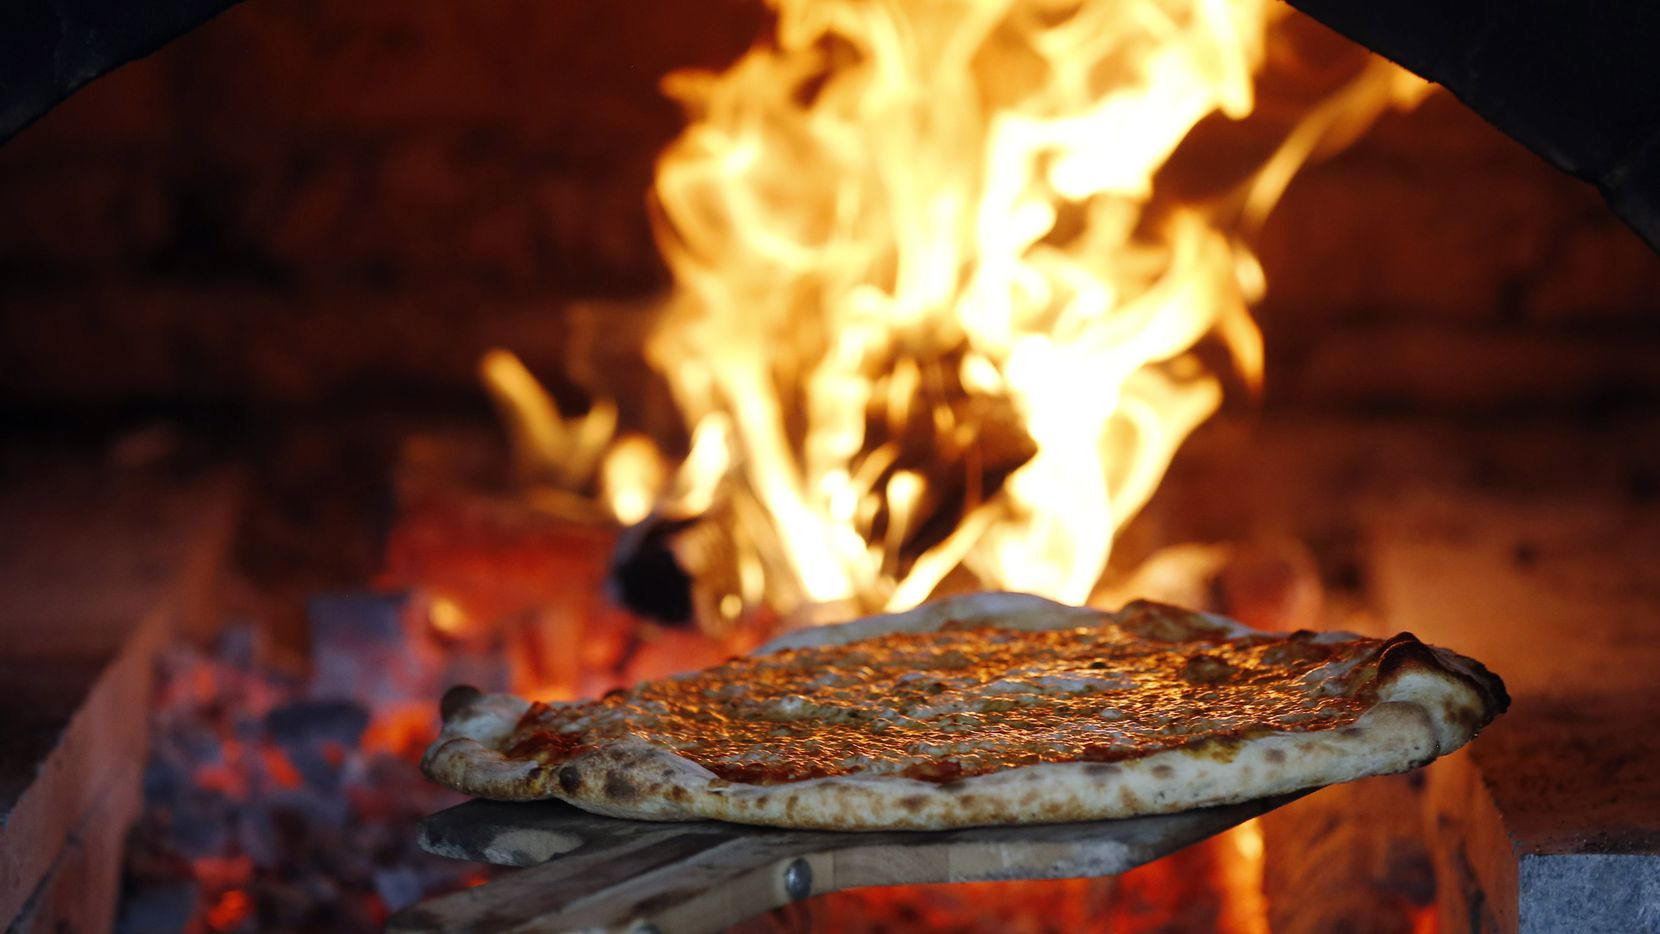 Cheese pizza is pulled from the wood fired oven at Flatbread Company in Dallas. The restaurant is expected to open Jan. 16, 2020.